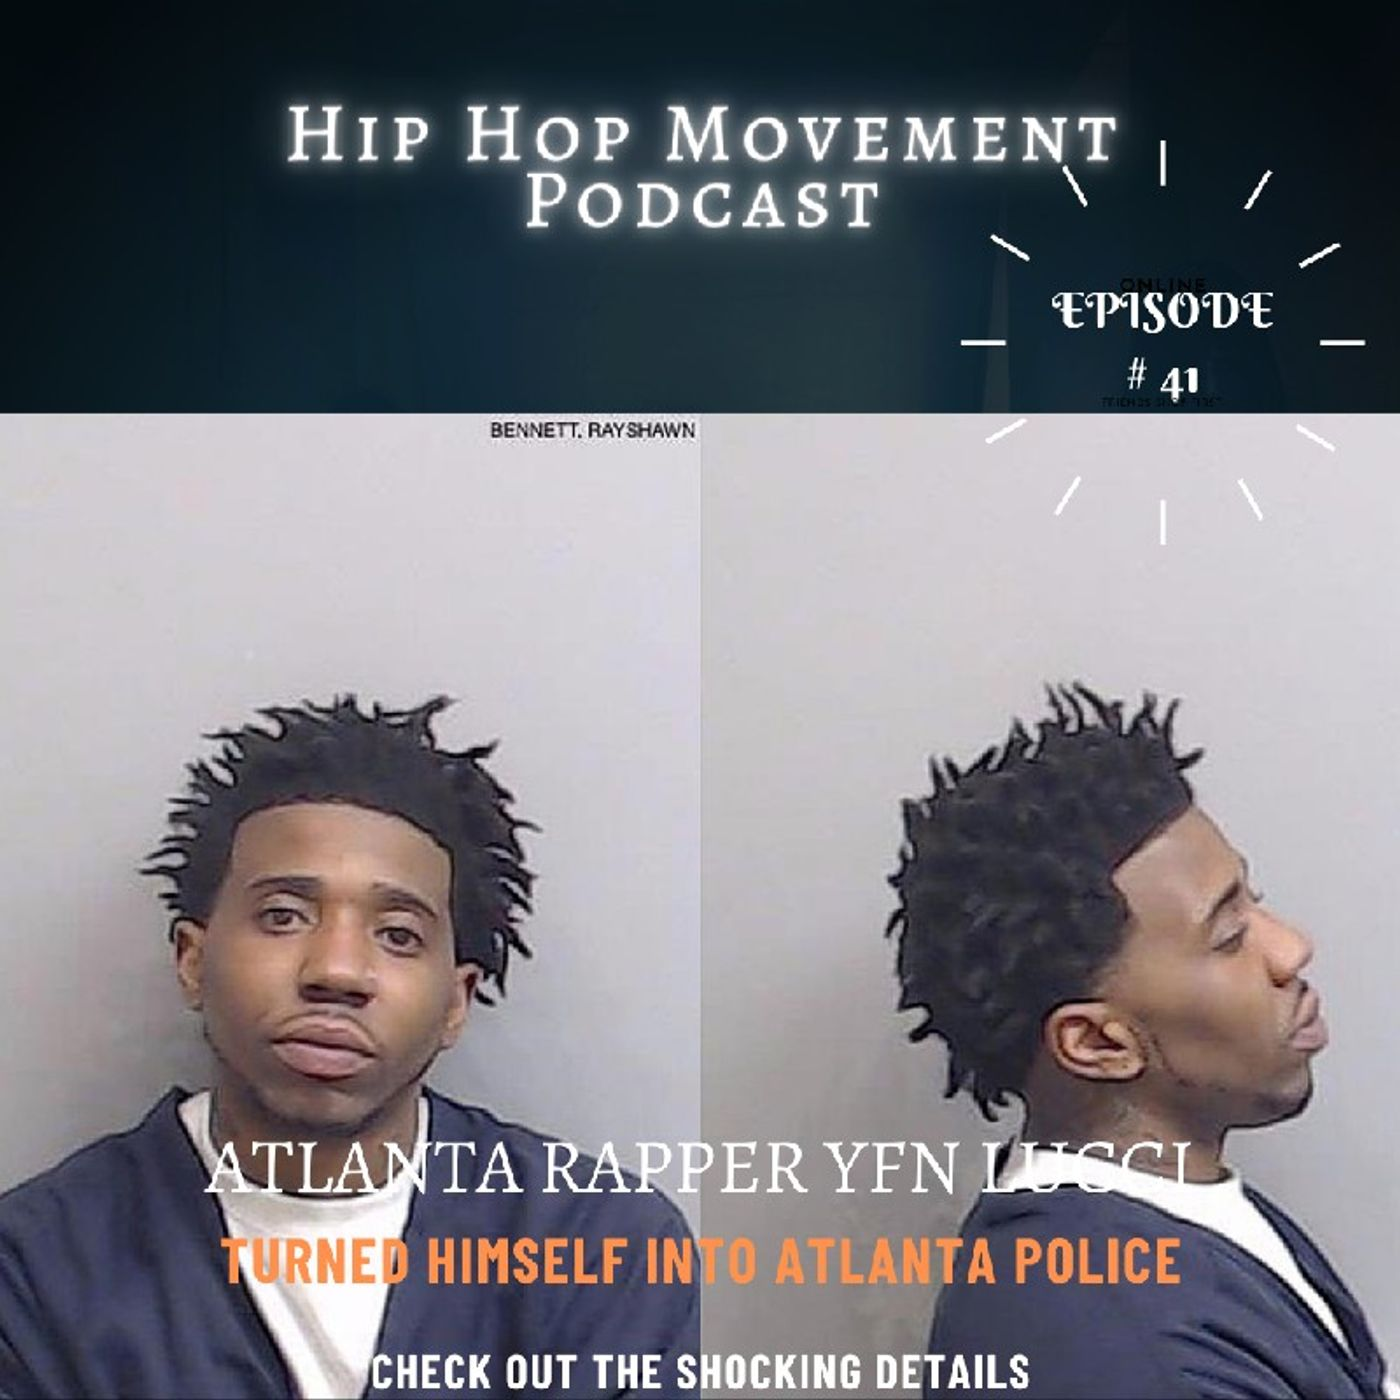 Episode 41 - Atlanta Rapper YFN Lucci Surrendered To Atlanta Police Wednesday Jan 13th, 2021